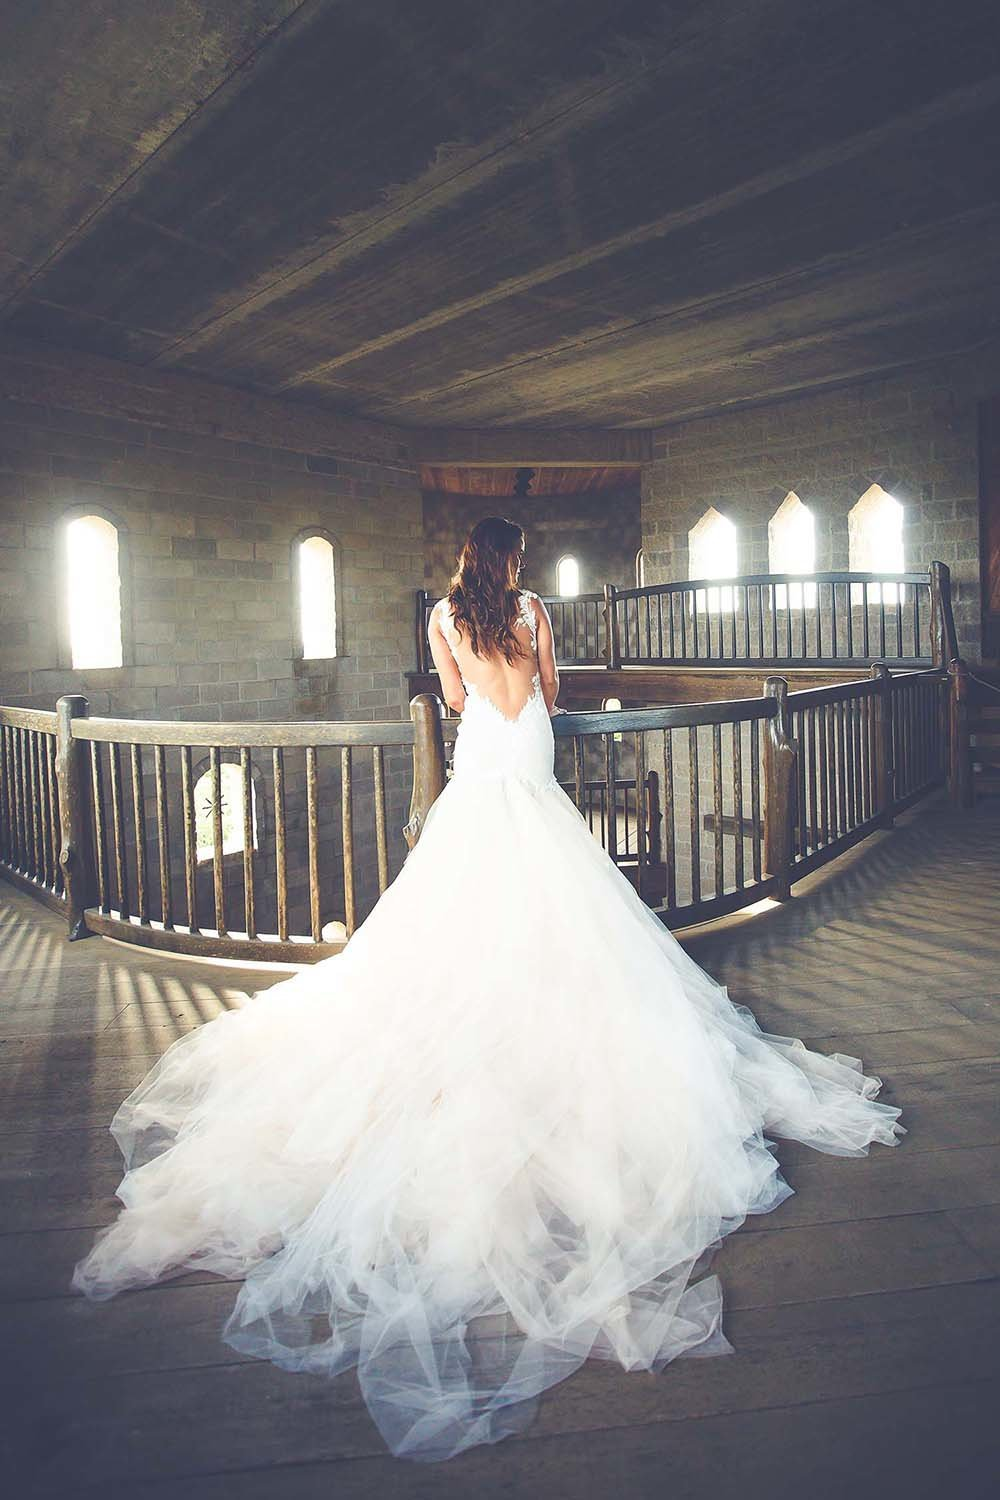 bride-tule-wedding-dress-bridal-portrait-castle-otttis-breaking-tradition-st-augustine